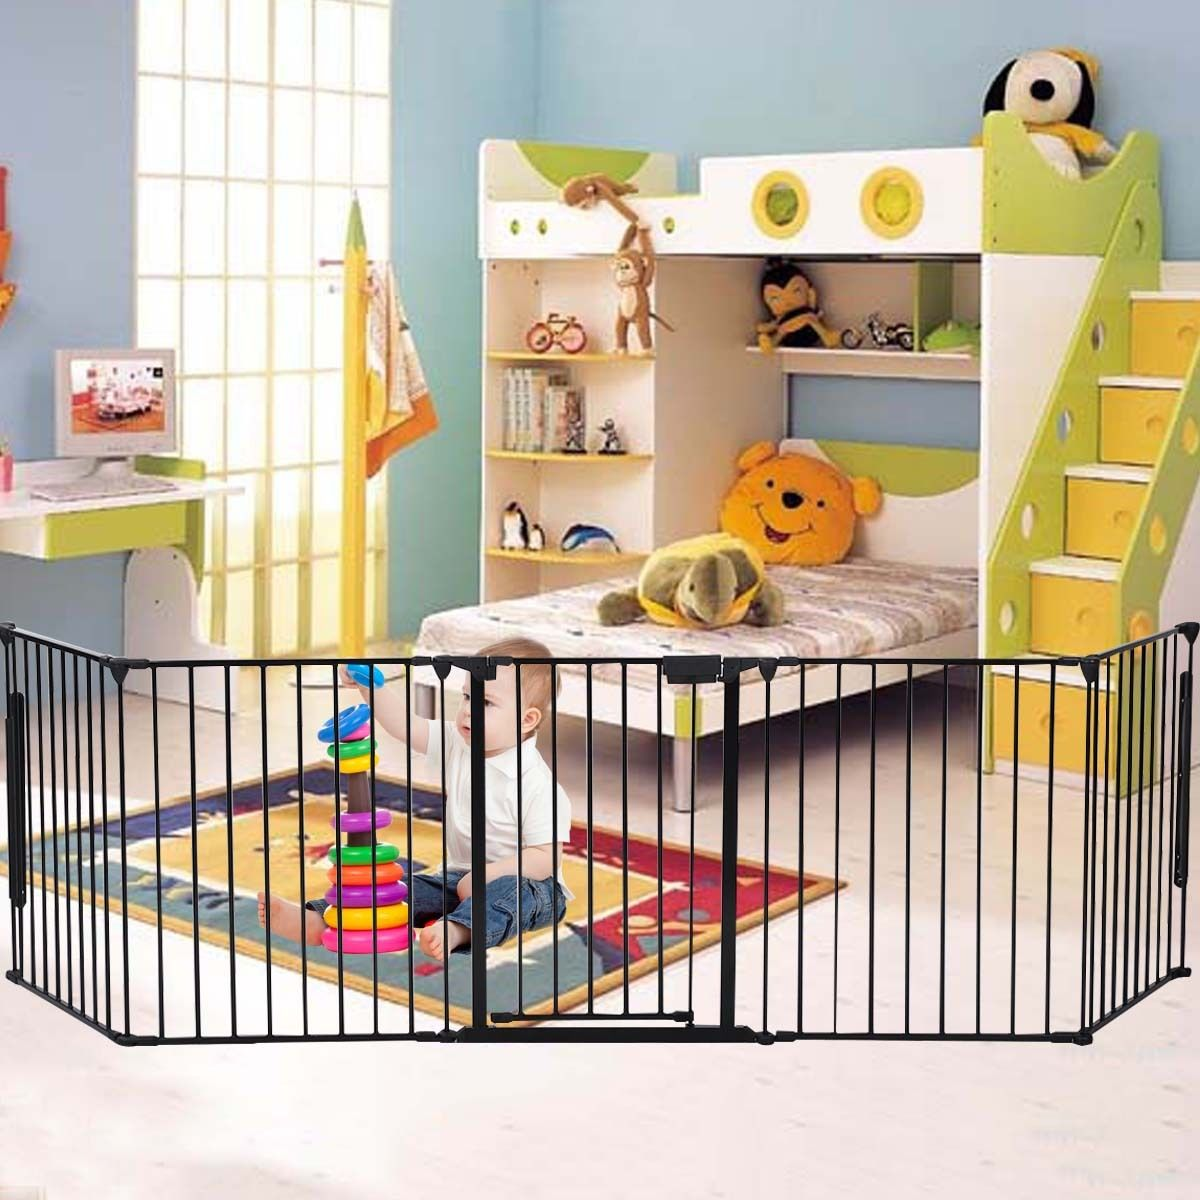 costway new fireplace fence baby safety fence hearth gate bbq